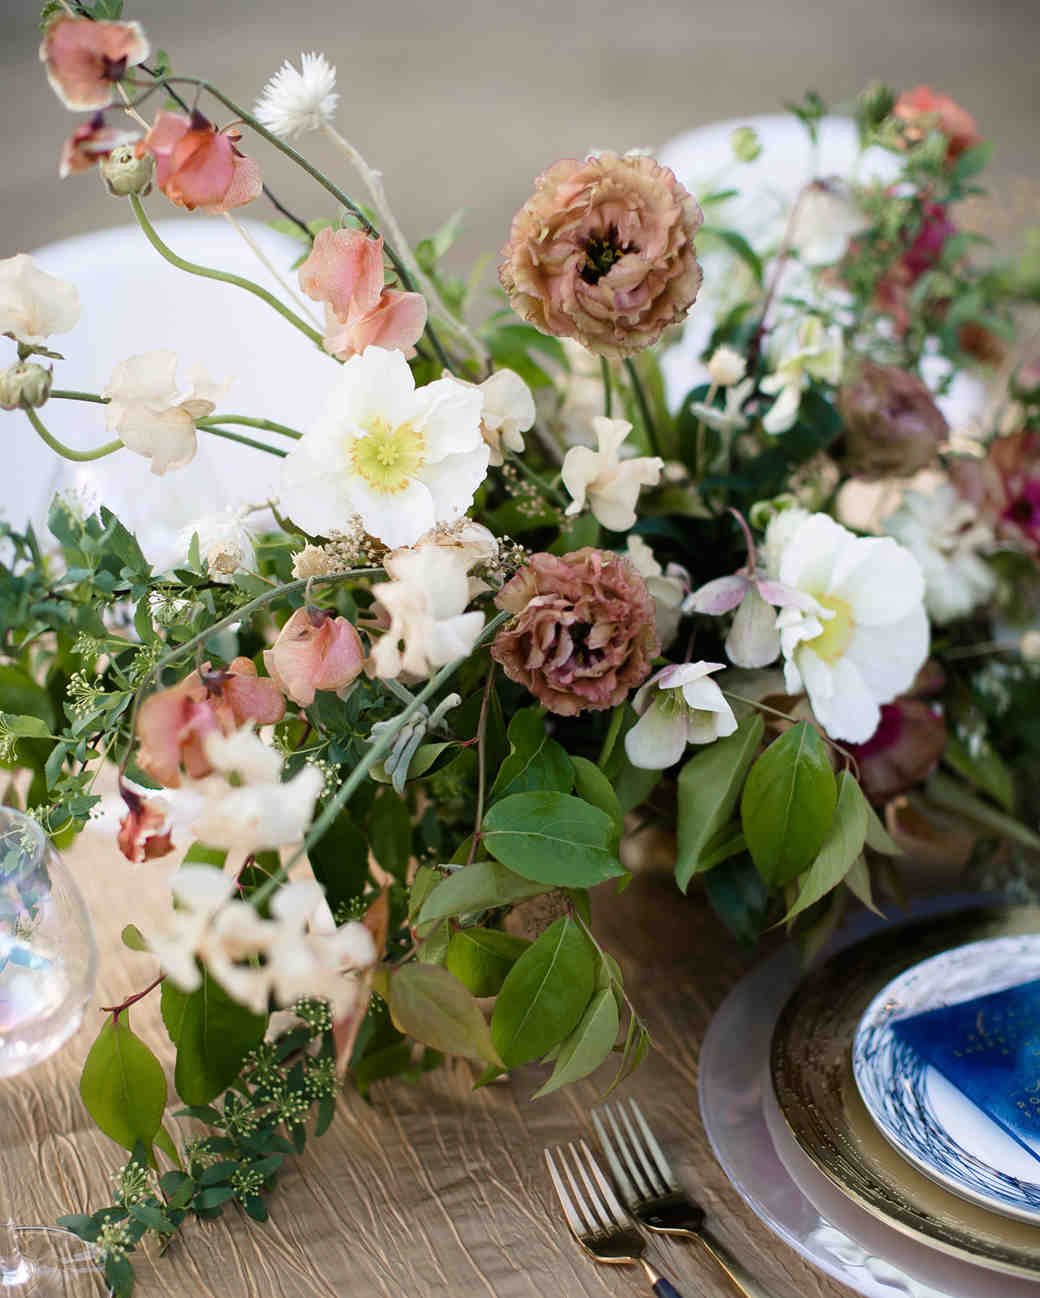 24 ways to use in season flowers in your fall wedding arrangements 24 ways to use in season flowers in your fall wedding arrangements martha stewart weddings junglespirit Images